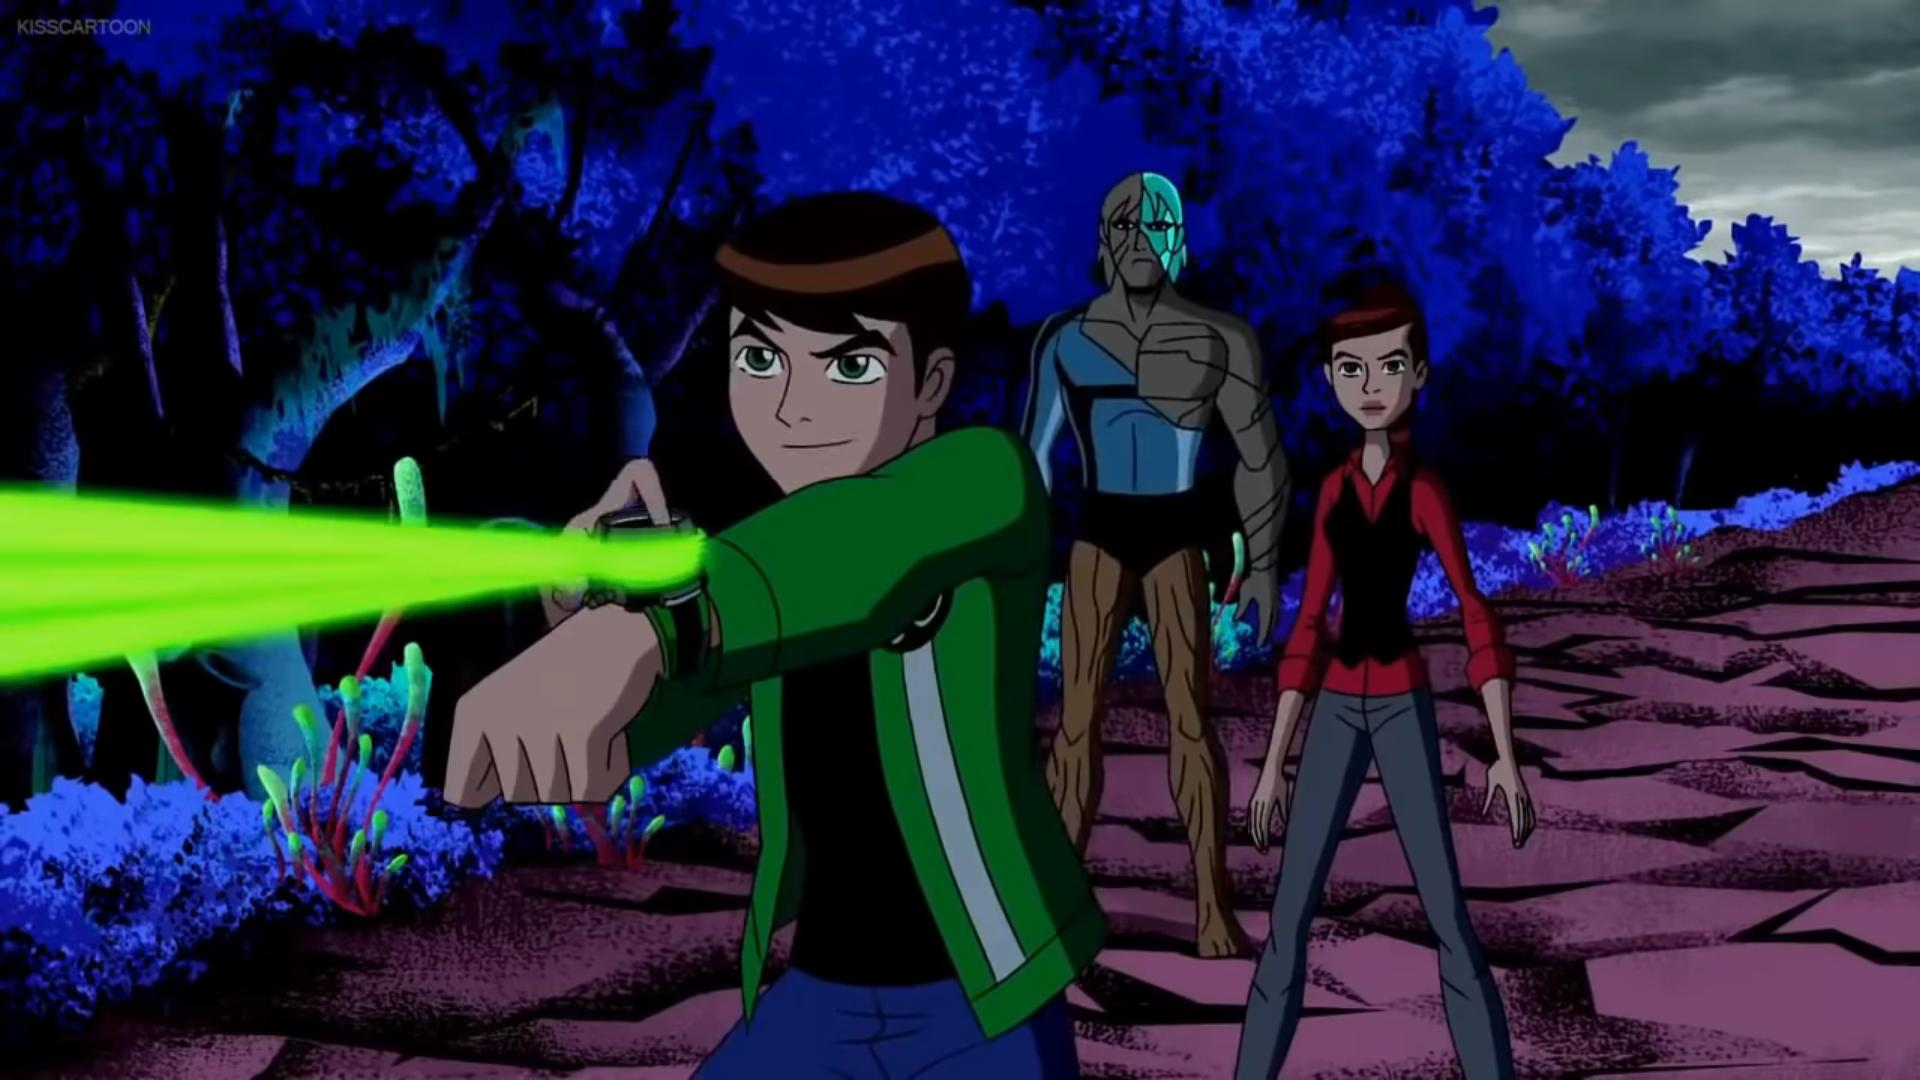 600+ Ben 10 All language Episodes  for Android - APK Download